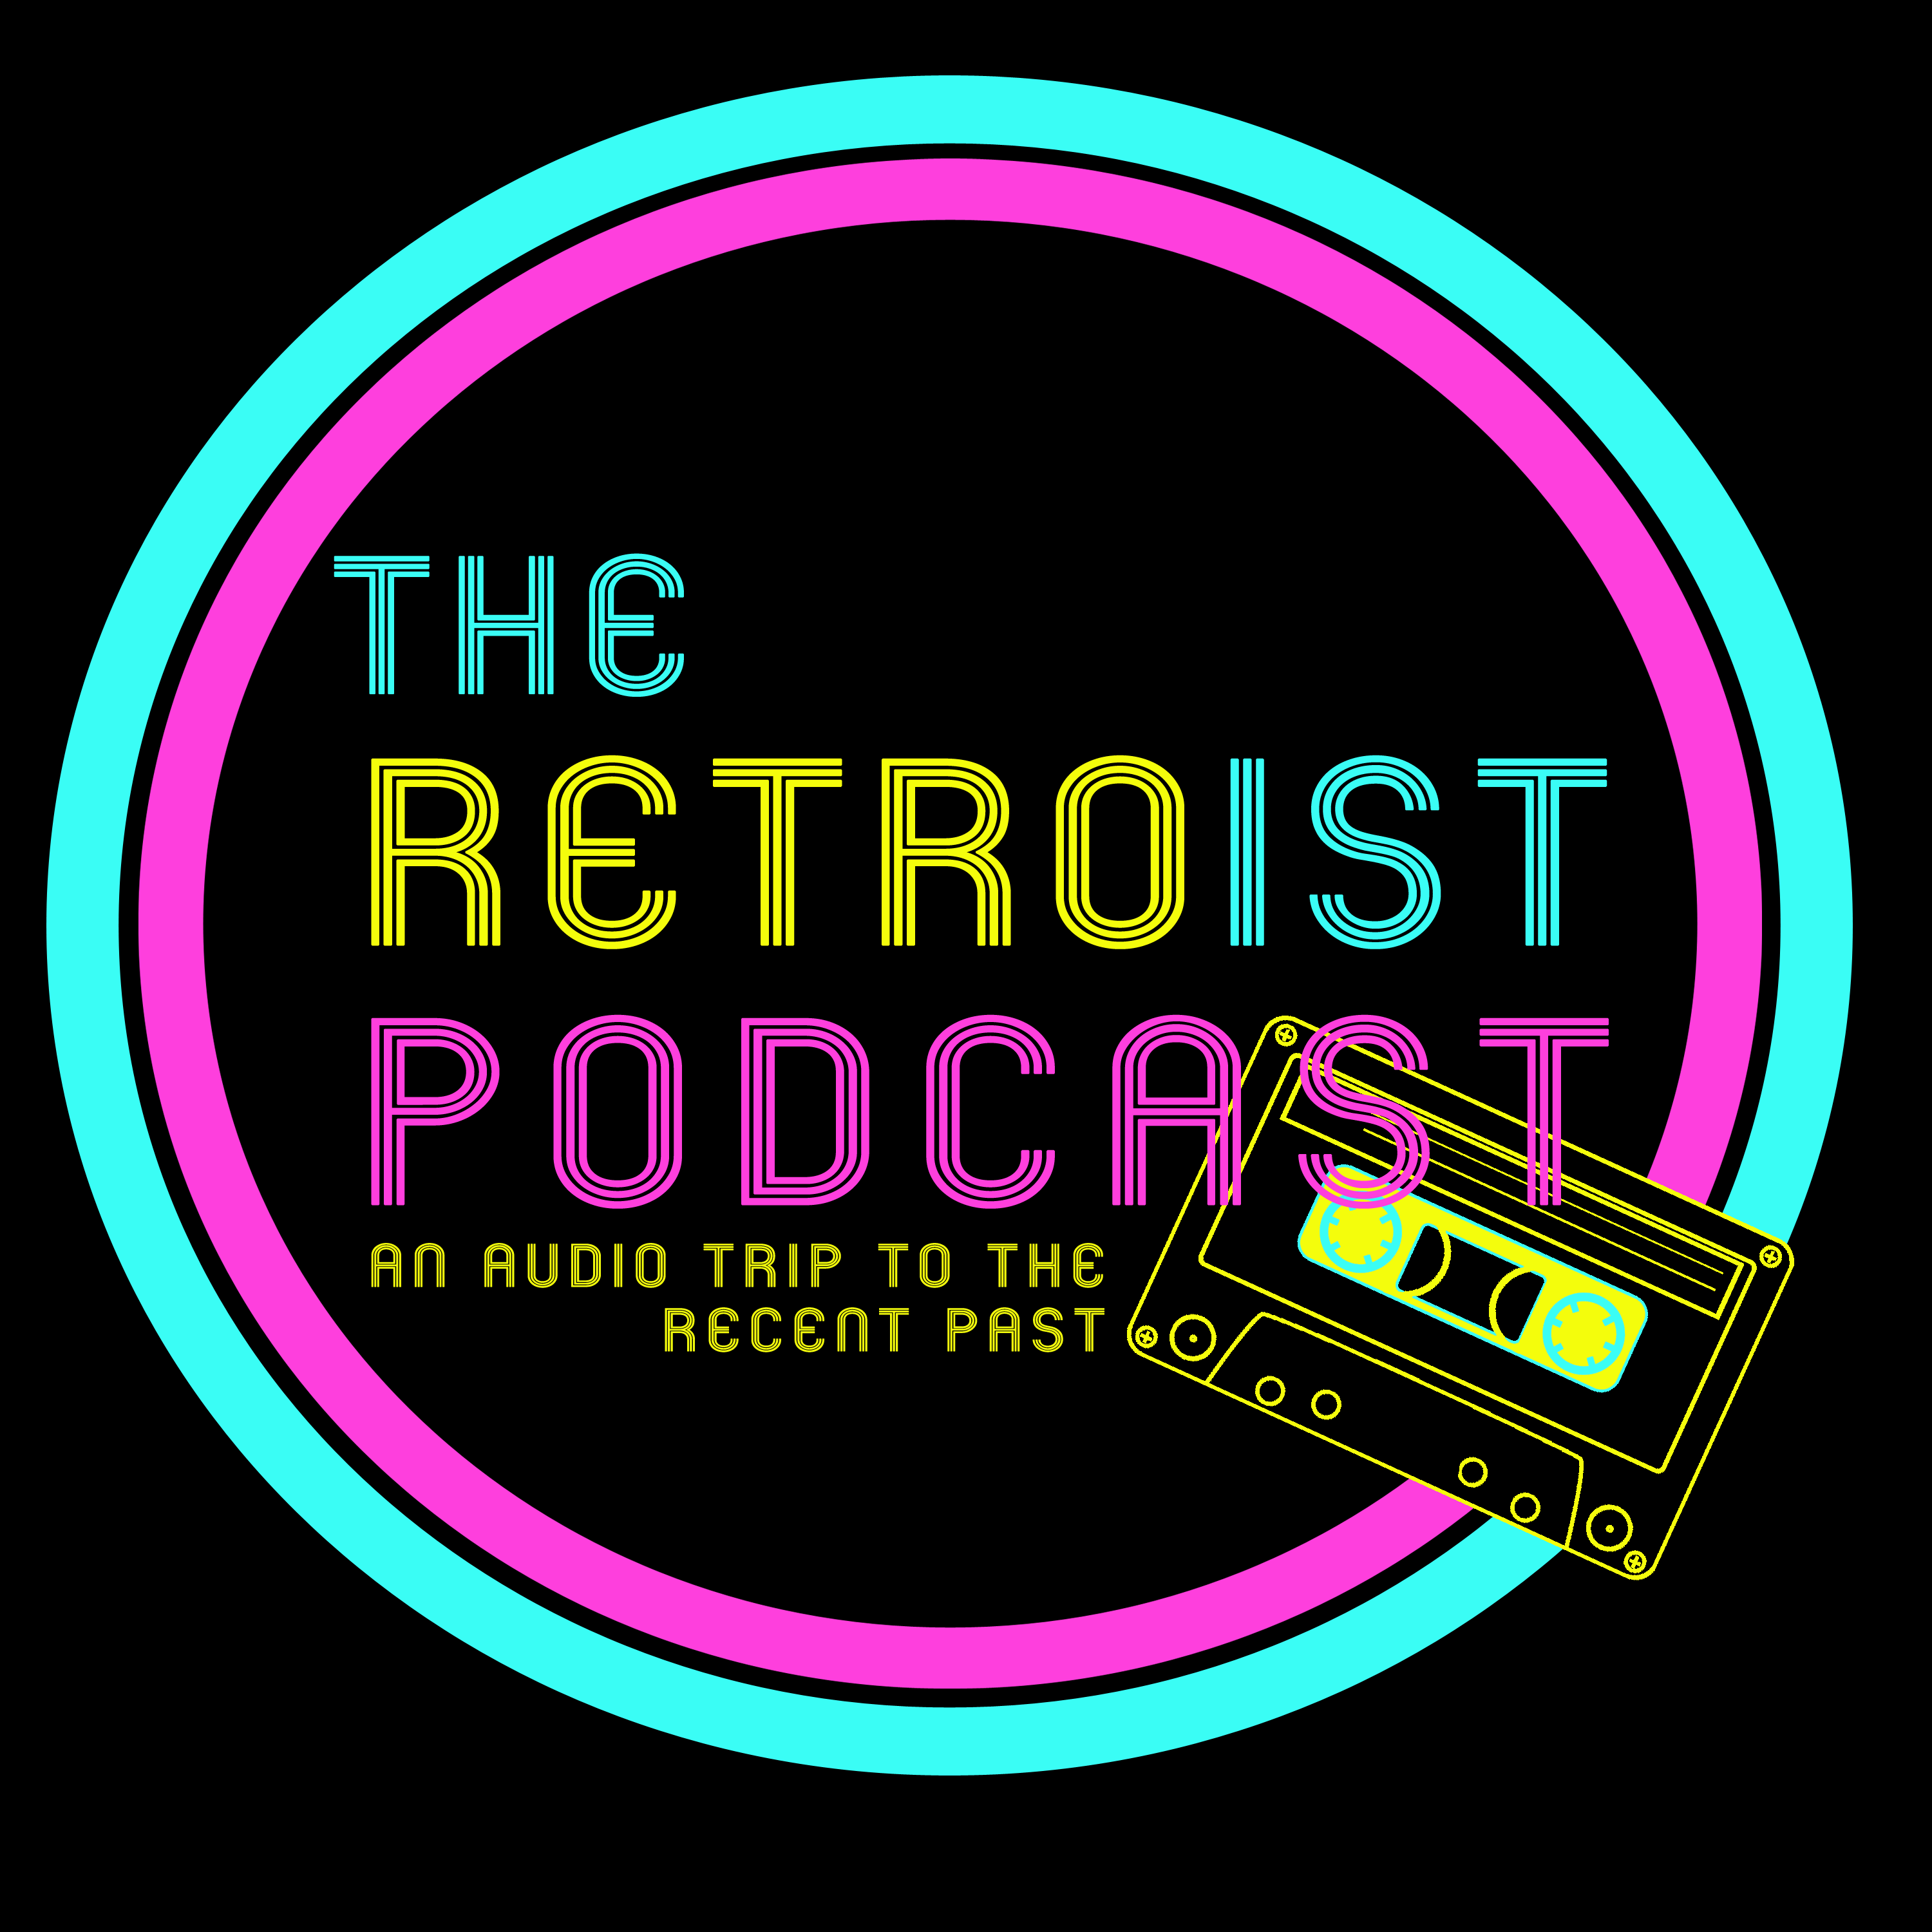 Retroist Podcast